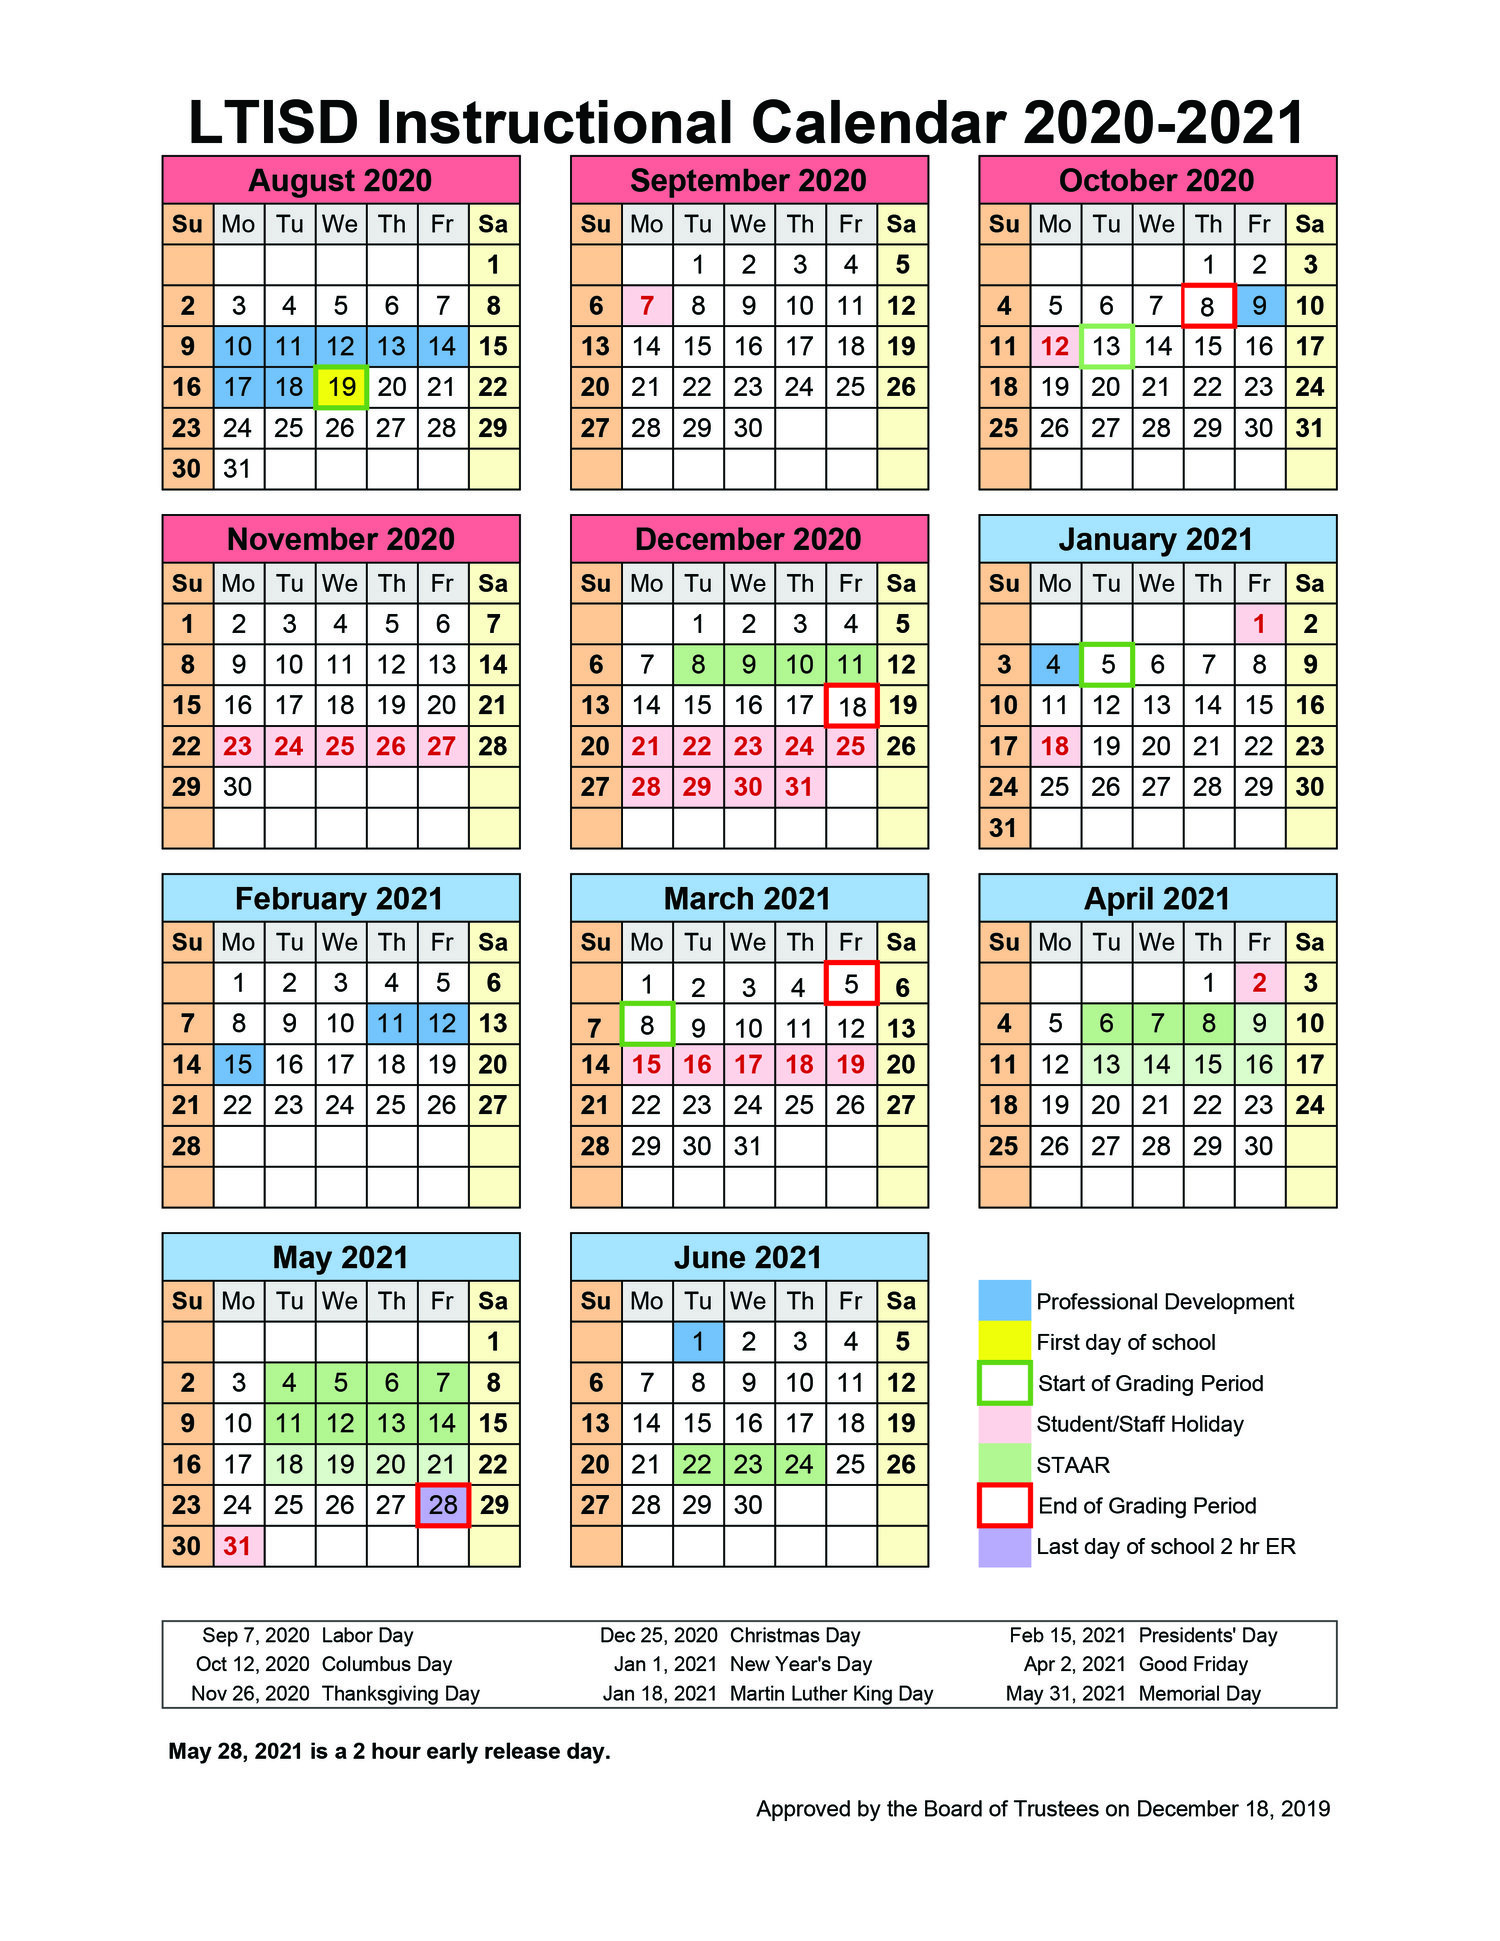 Calendar Dec 2019 Jan 2021 School board approves 2020 2021 Instructional Calendar — CURRENTS